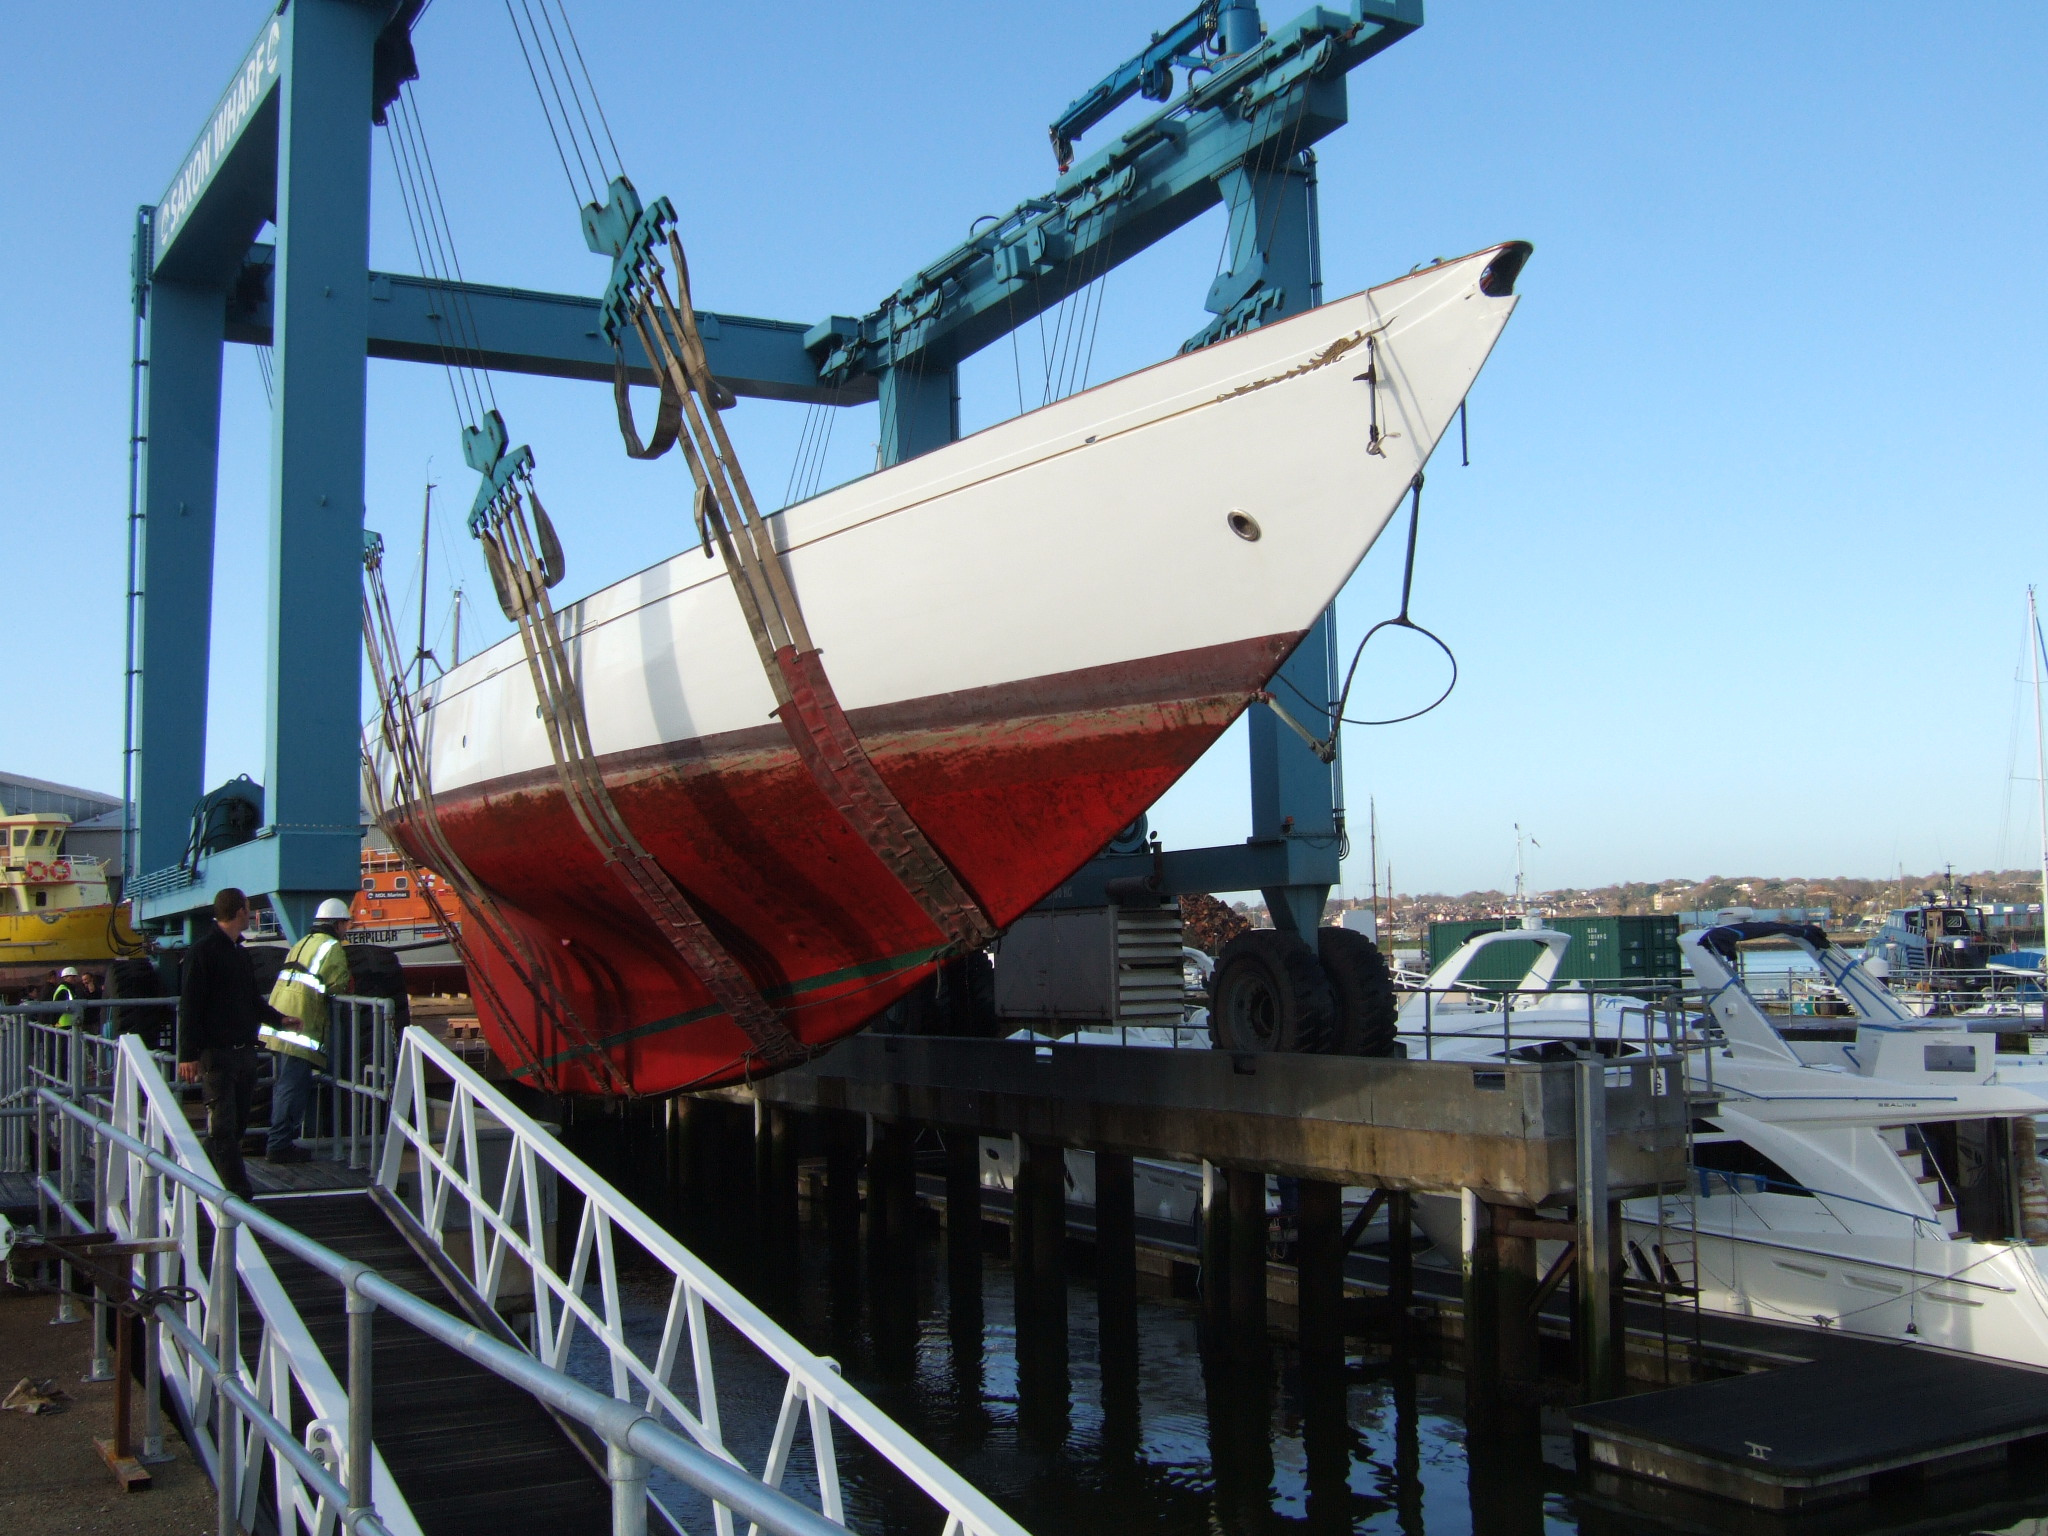 Schooner Altair comes to Saxon Wharf to undergo work by Fairlie Yachts